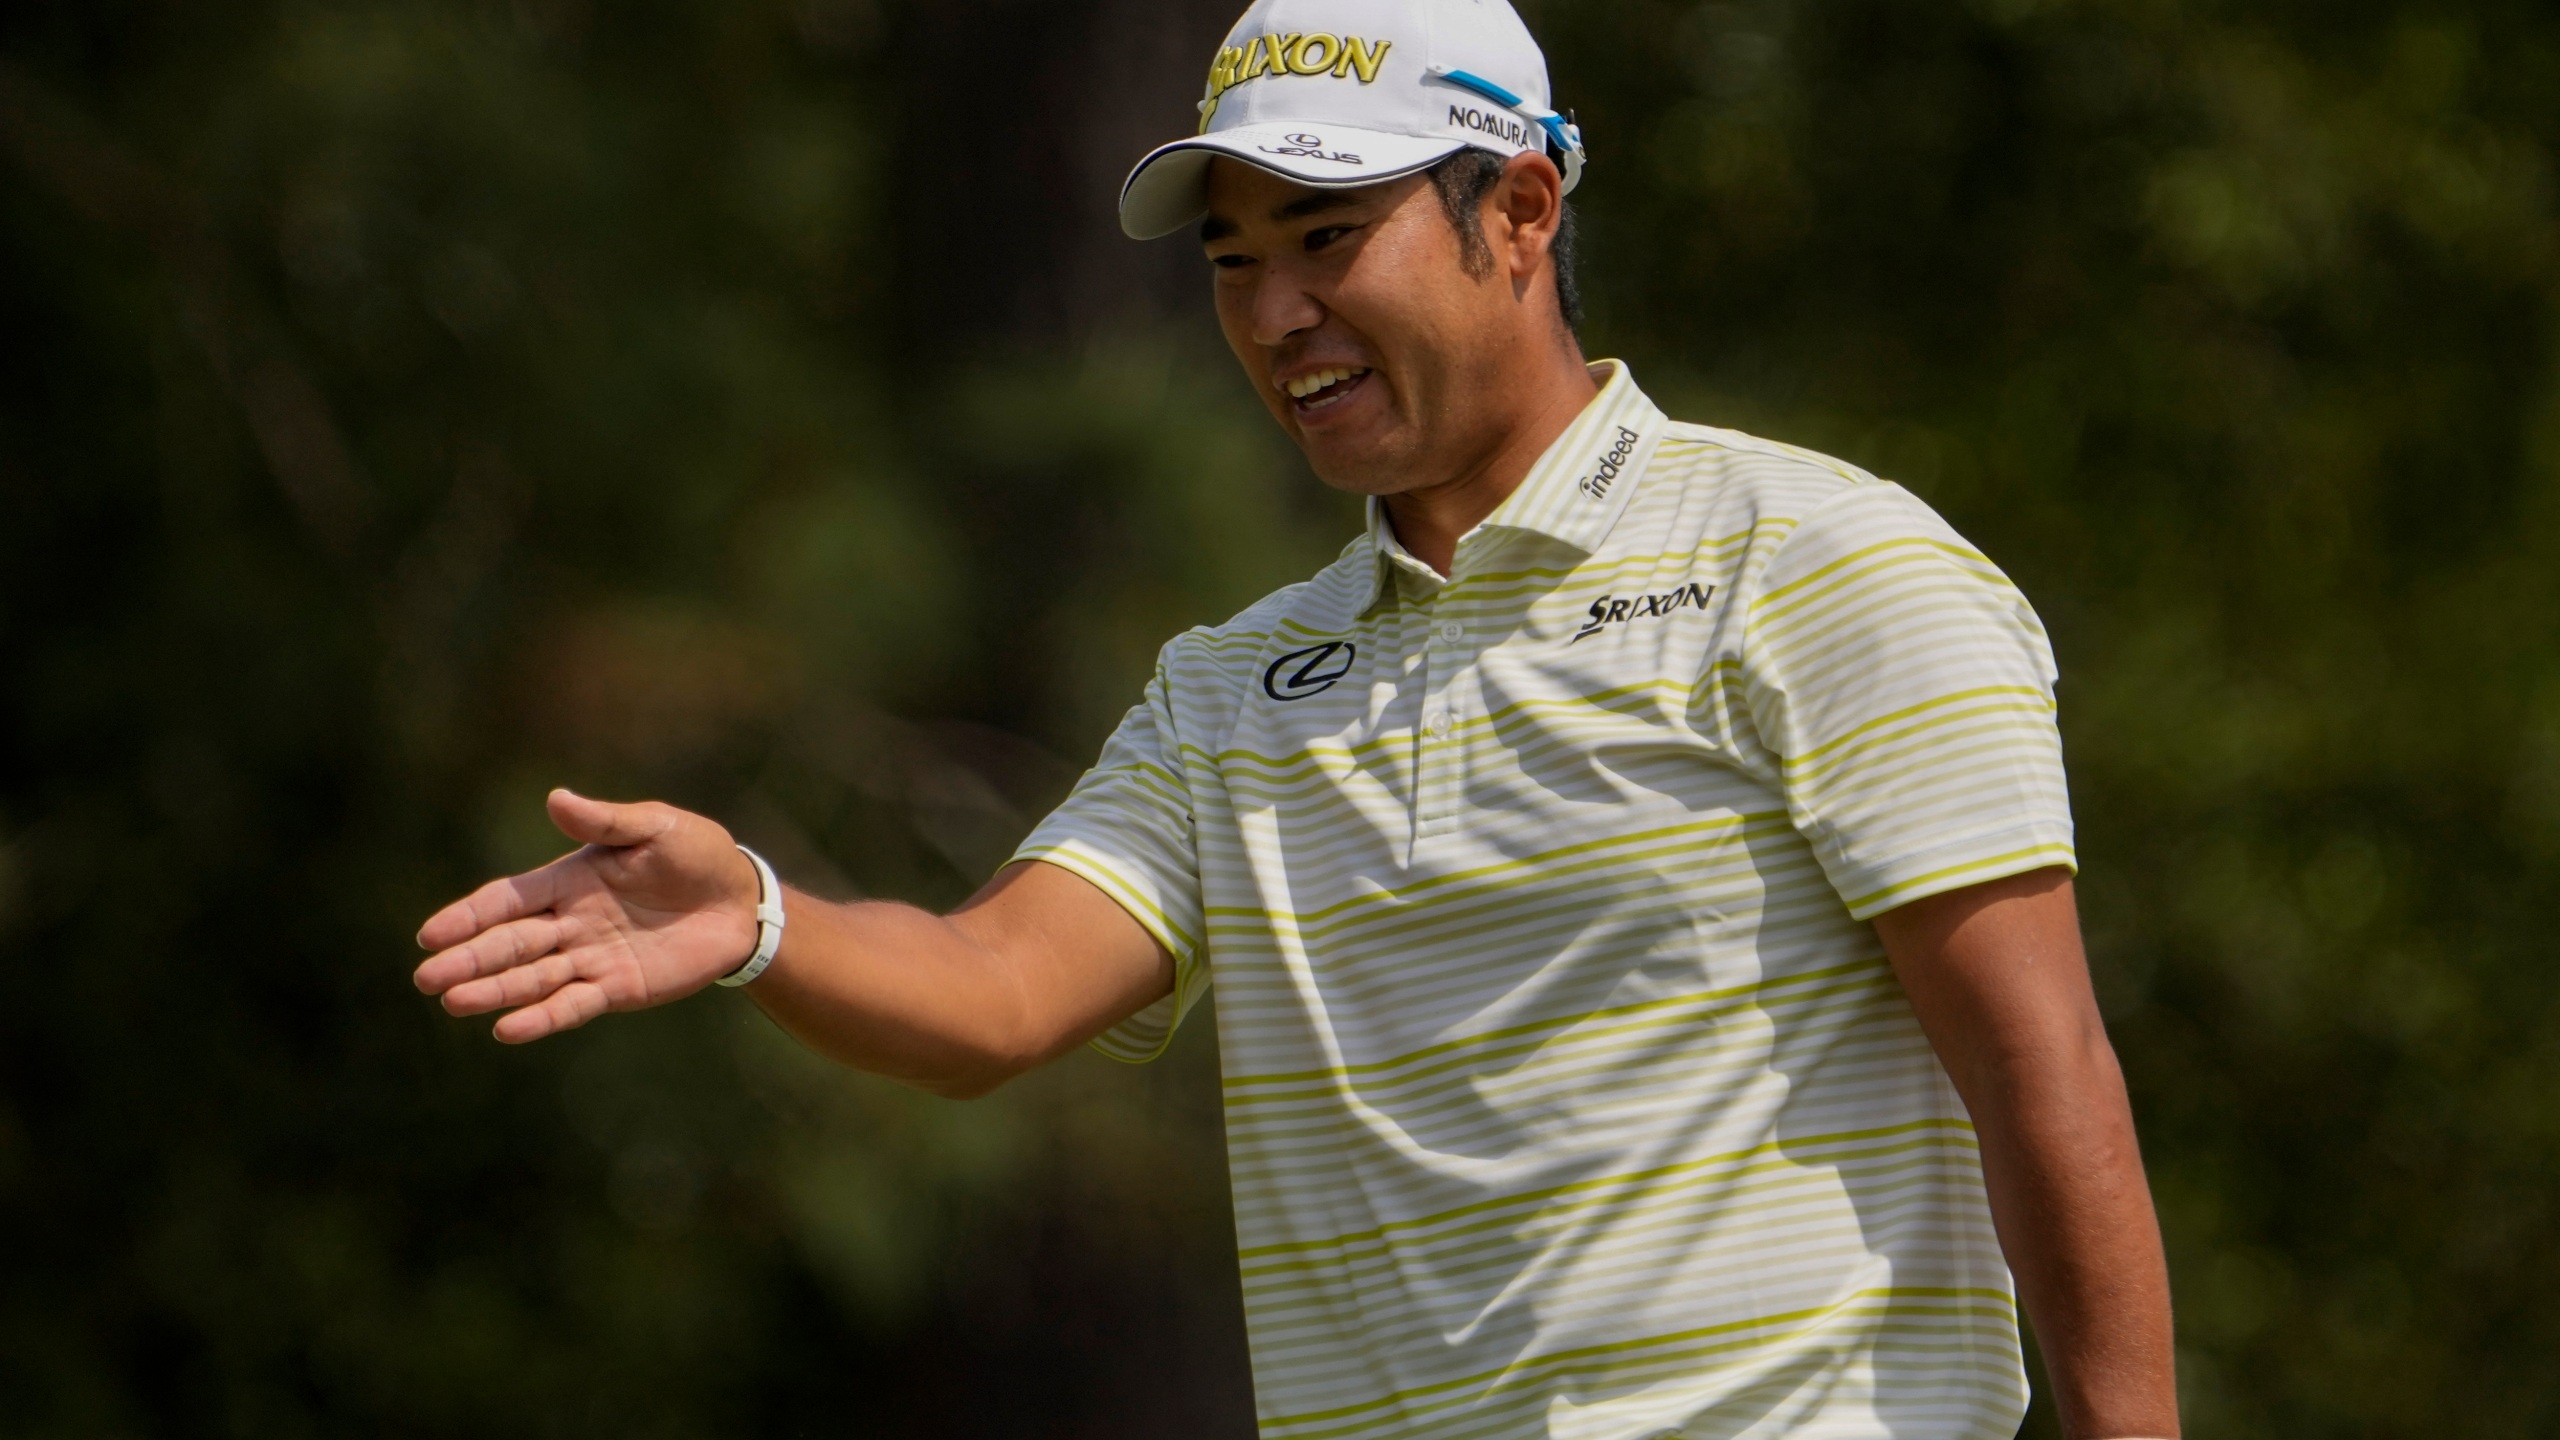 Hideki Matsuyama, of Japan, reacts after a bogey on the first hole during the final round of the Masters golf tournament on Sunday, April 11, 2021, in Augusta, Ga. (AP Photo/David J. Phillip)